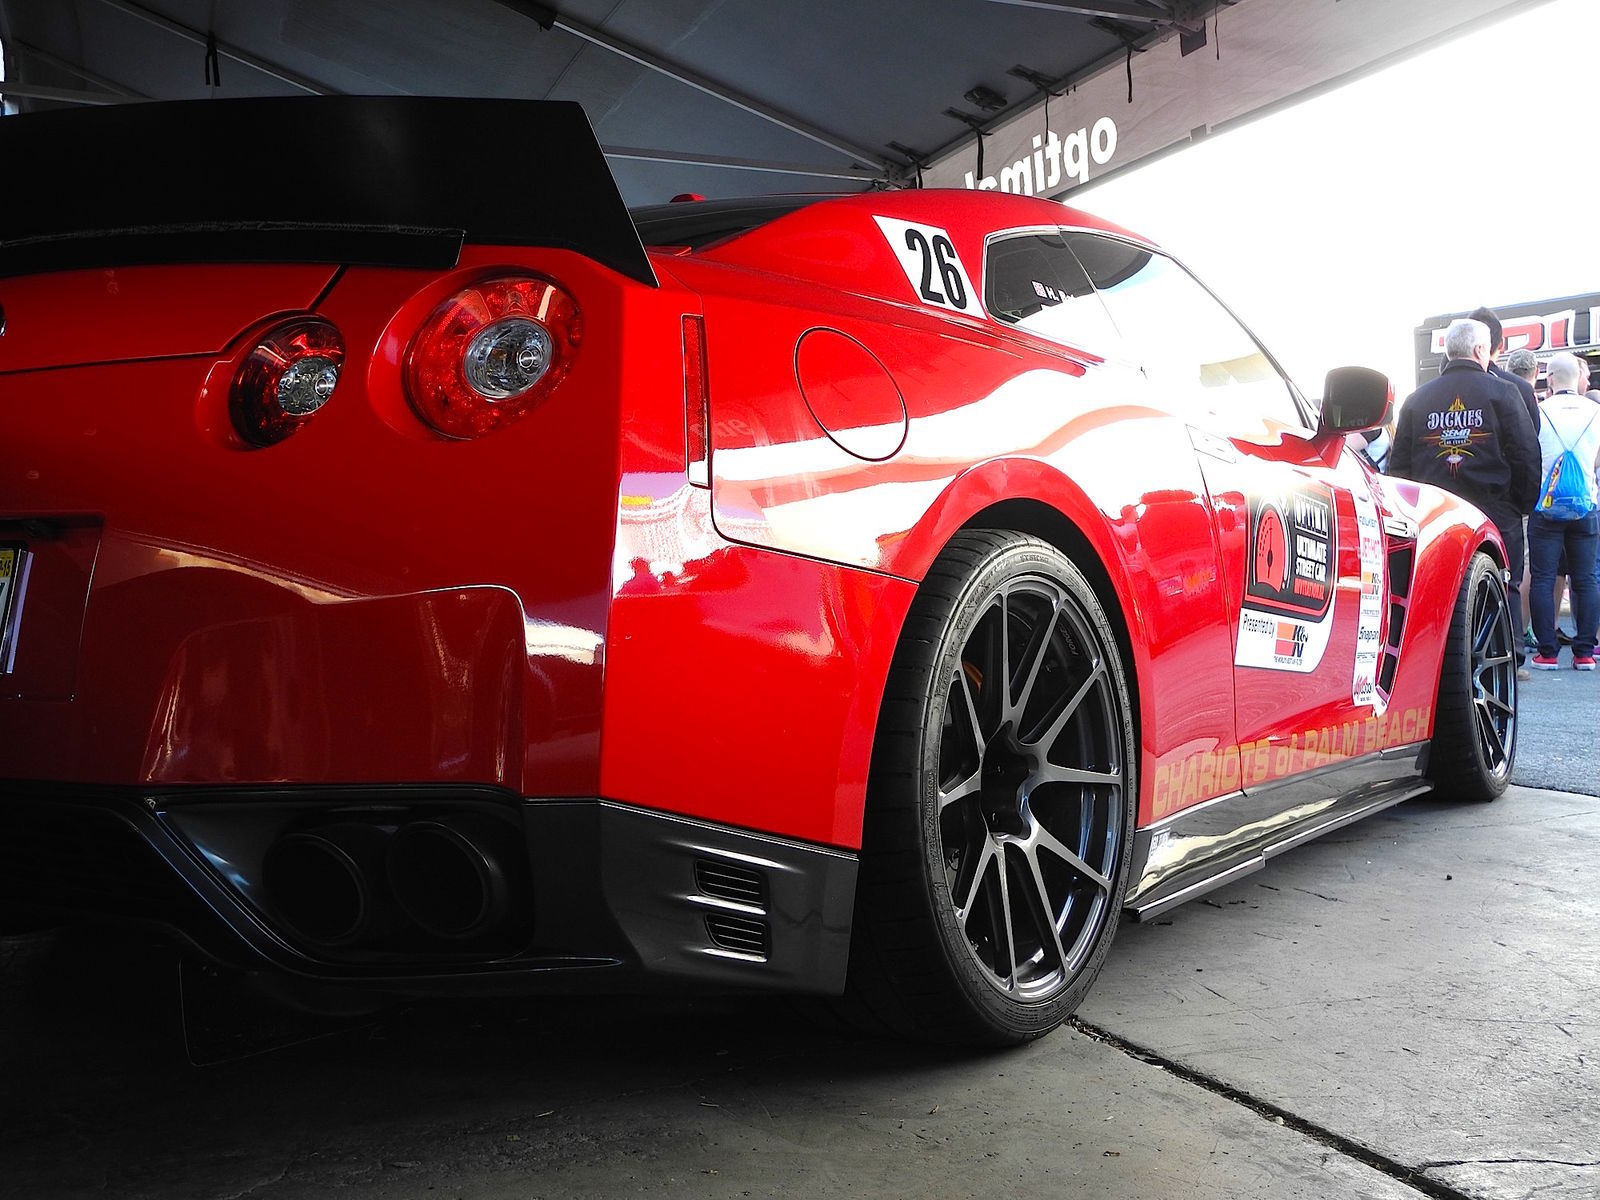 2013 Nissan GT-R | Nissan GT-R on Forgeline GA1R Open Lug Wheels